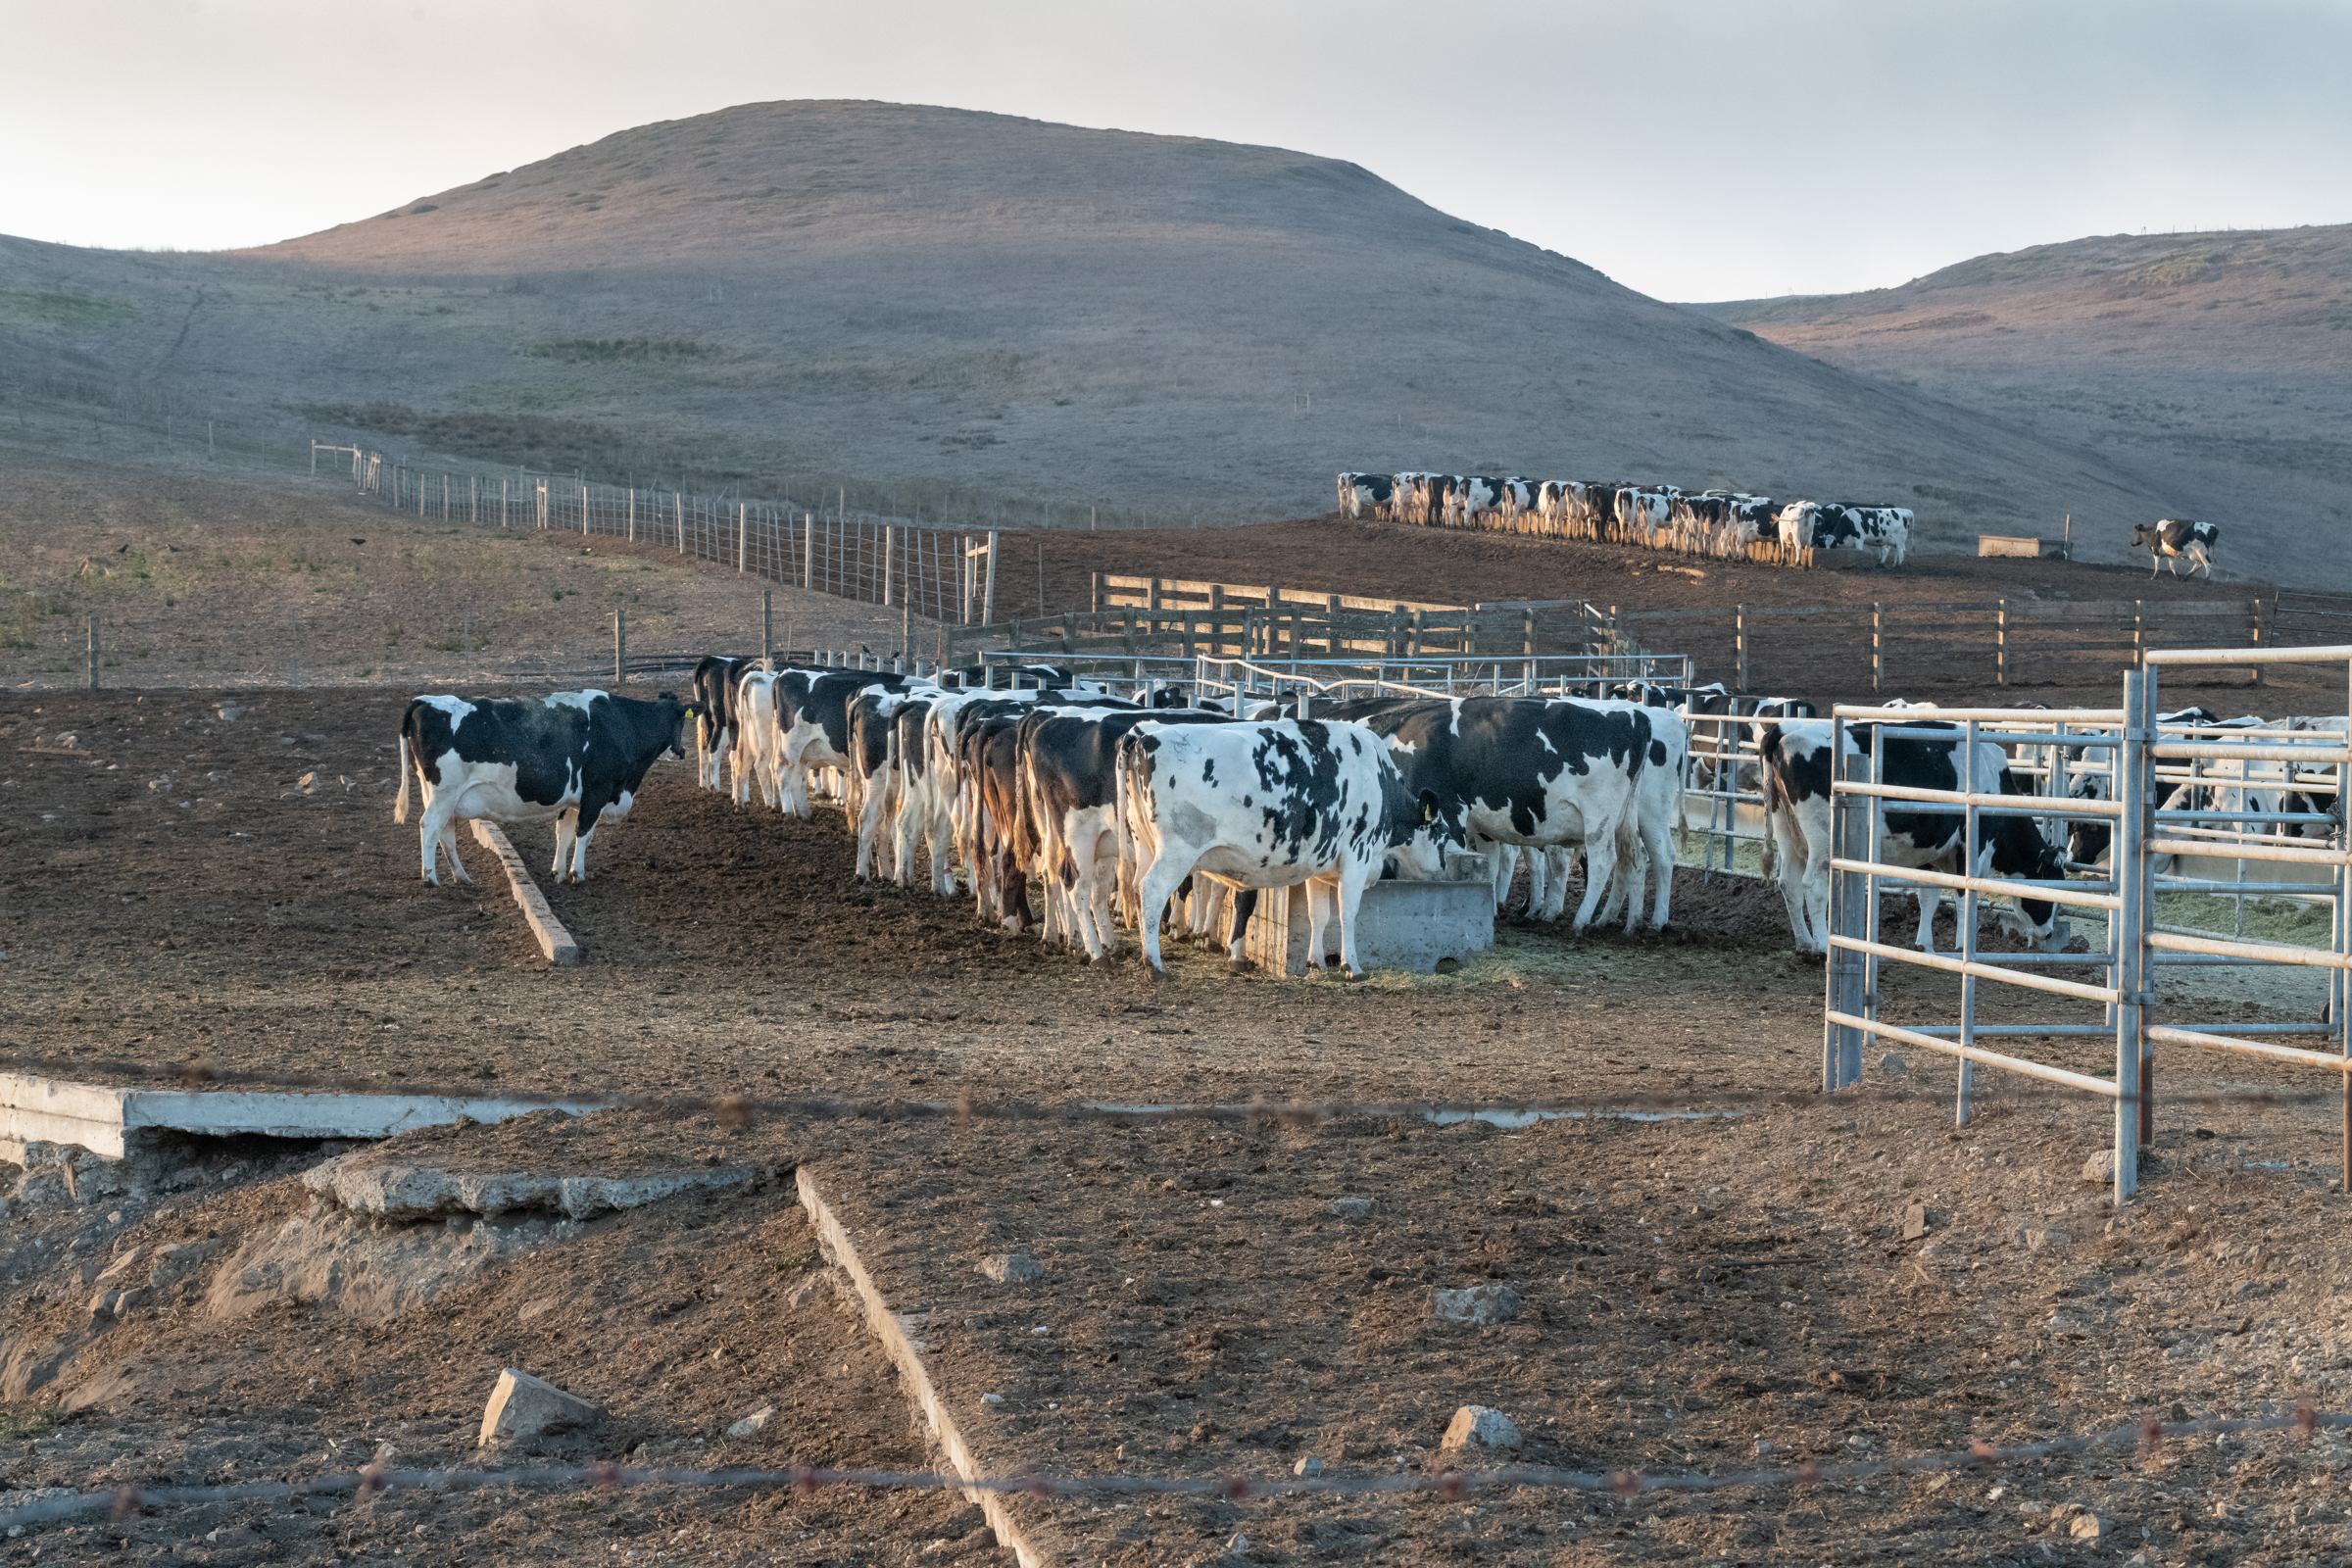 Dairy cattle feed from troughs at sunset at one of the large ranches at Point Reyes National Seashore.